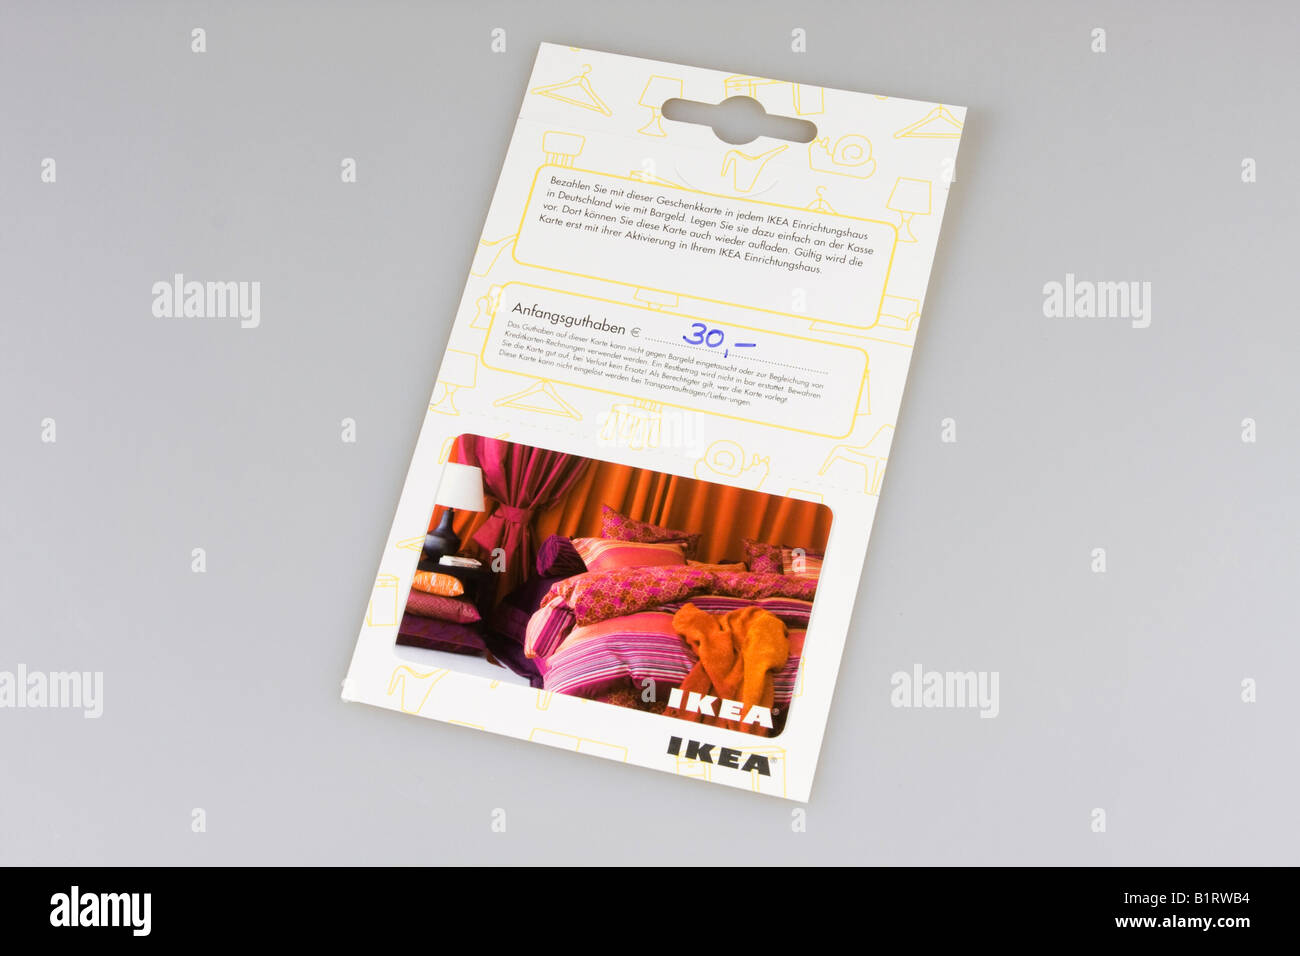 shopping ikea stock photos shopping ikea stock images alamy. Black Bedroom Furniture Sets. Home Design Ideas